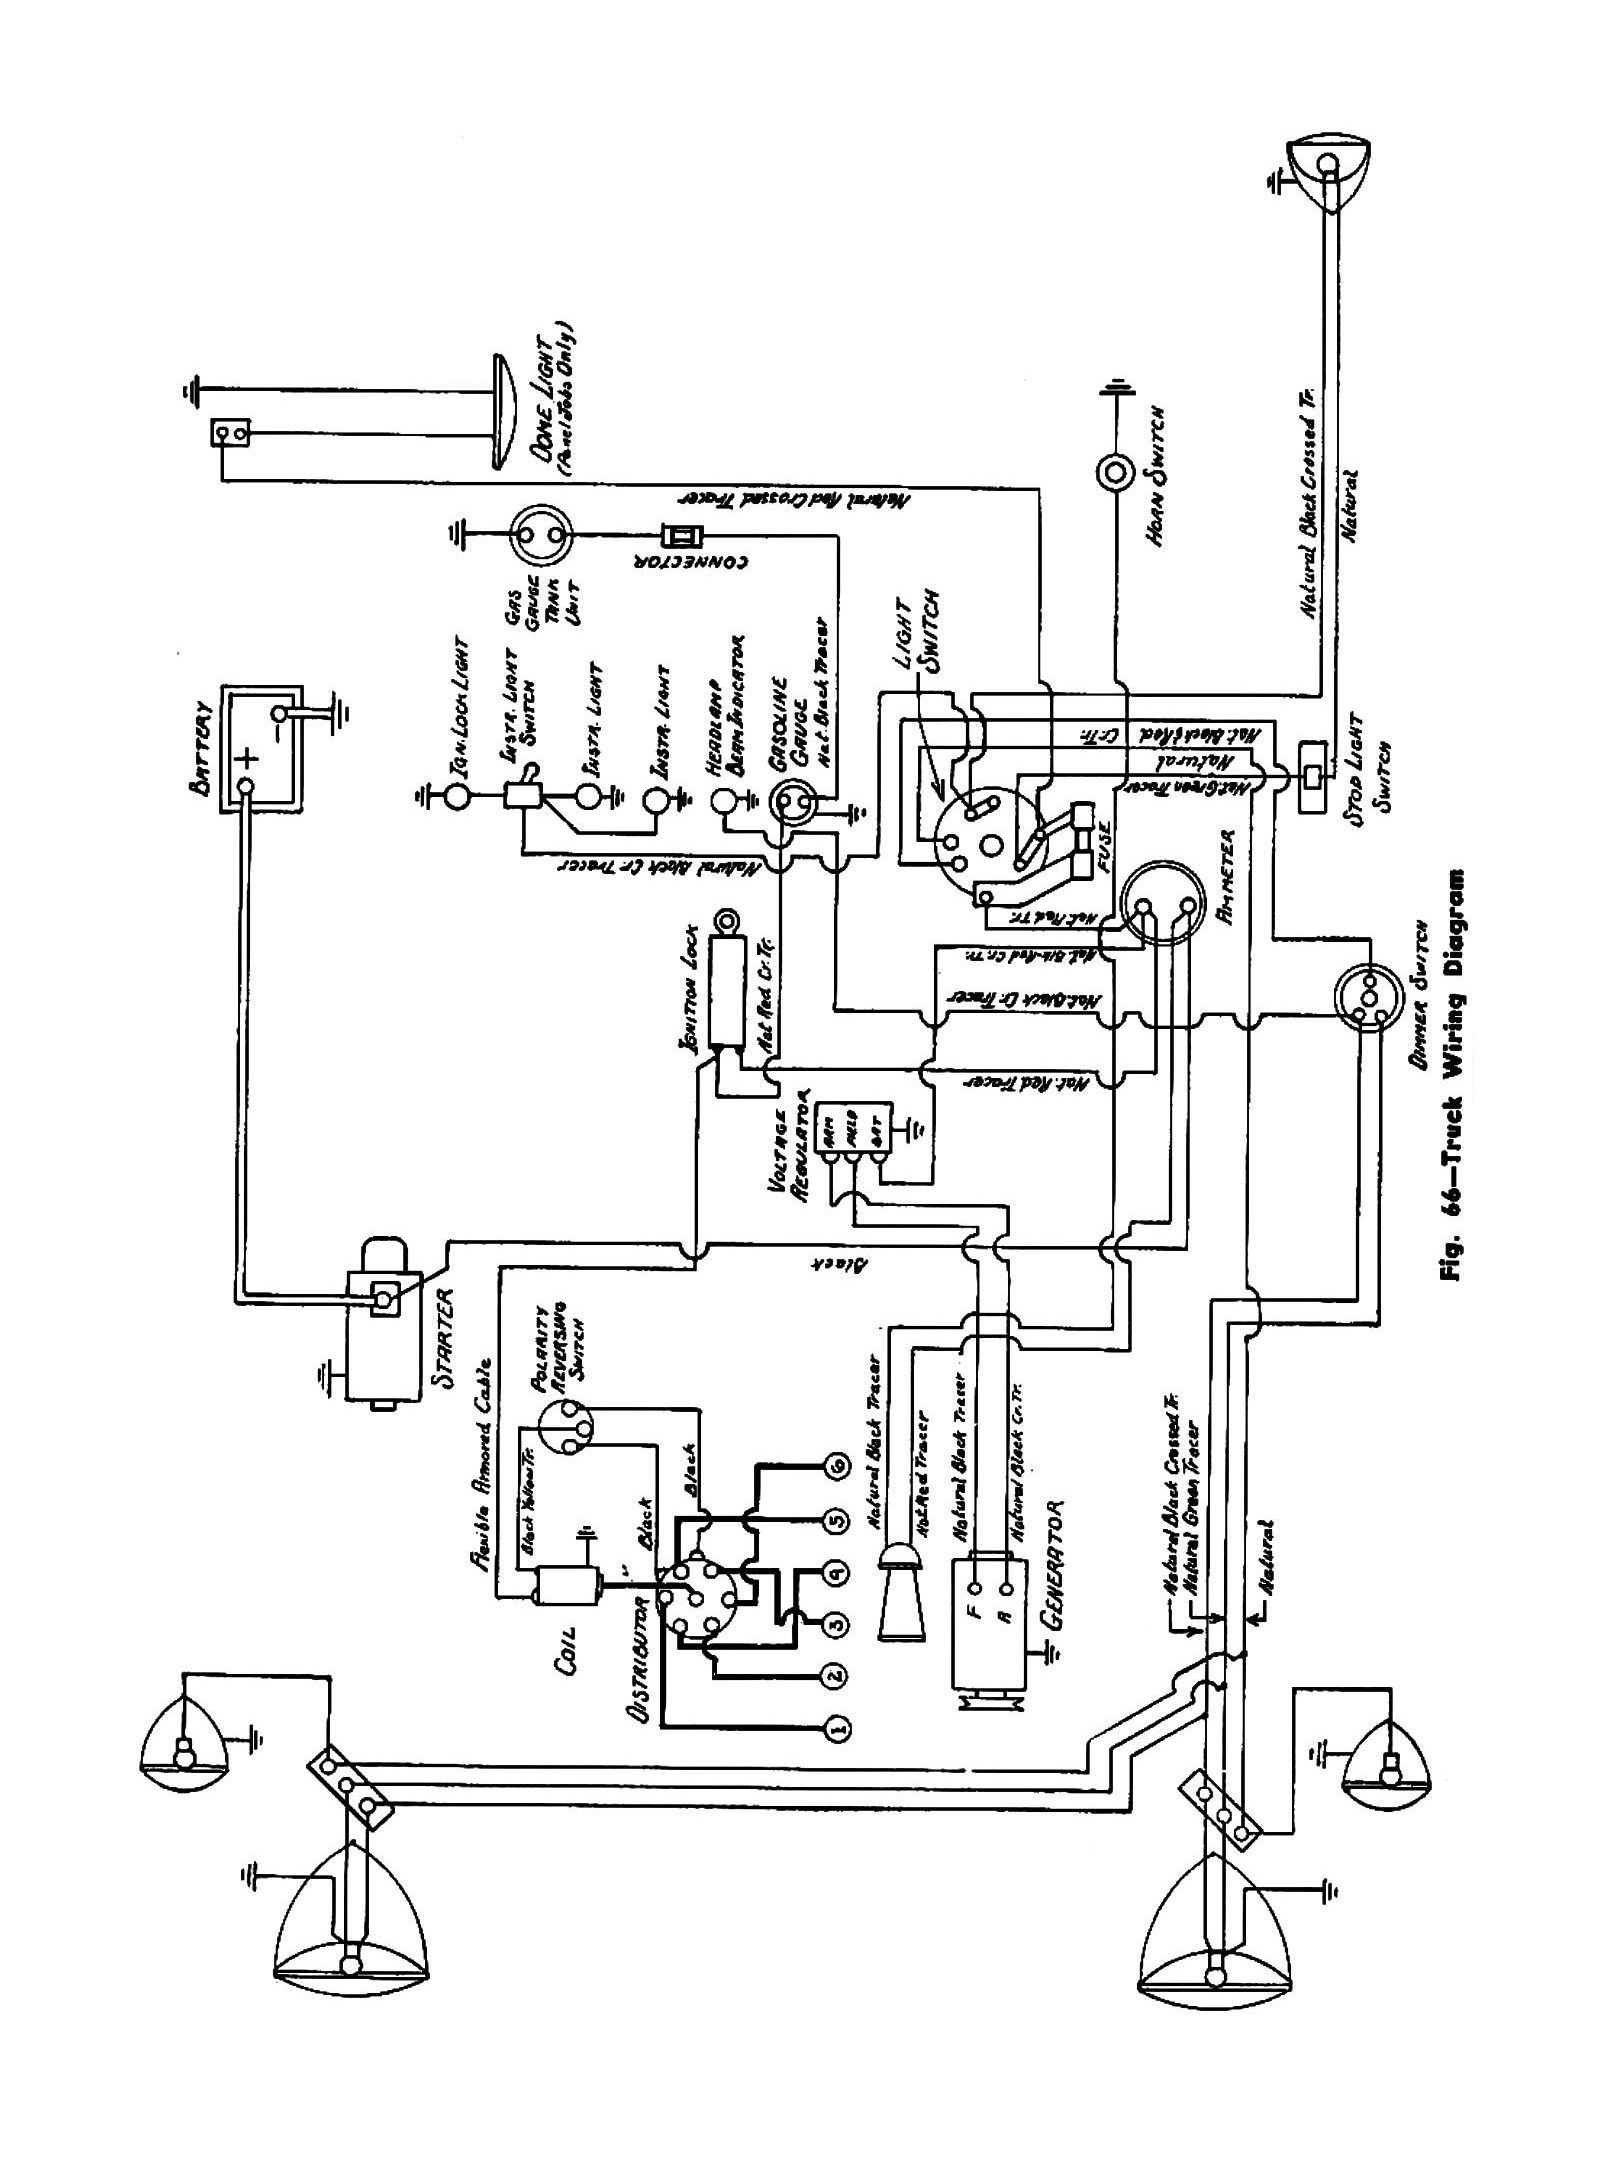 hight resolution of 52 chevy pickup wiring diagram wiring diagram for you wiring diagram 96 chevy 1500 pickup 1954